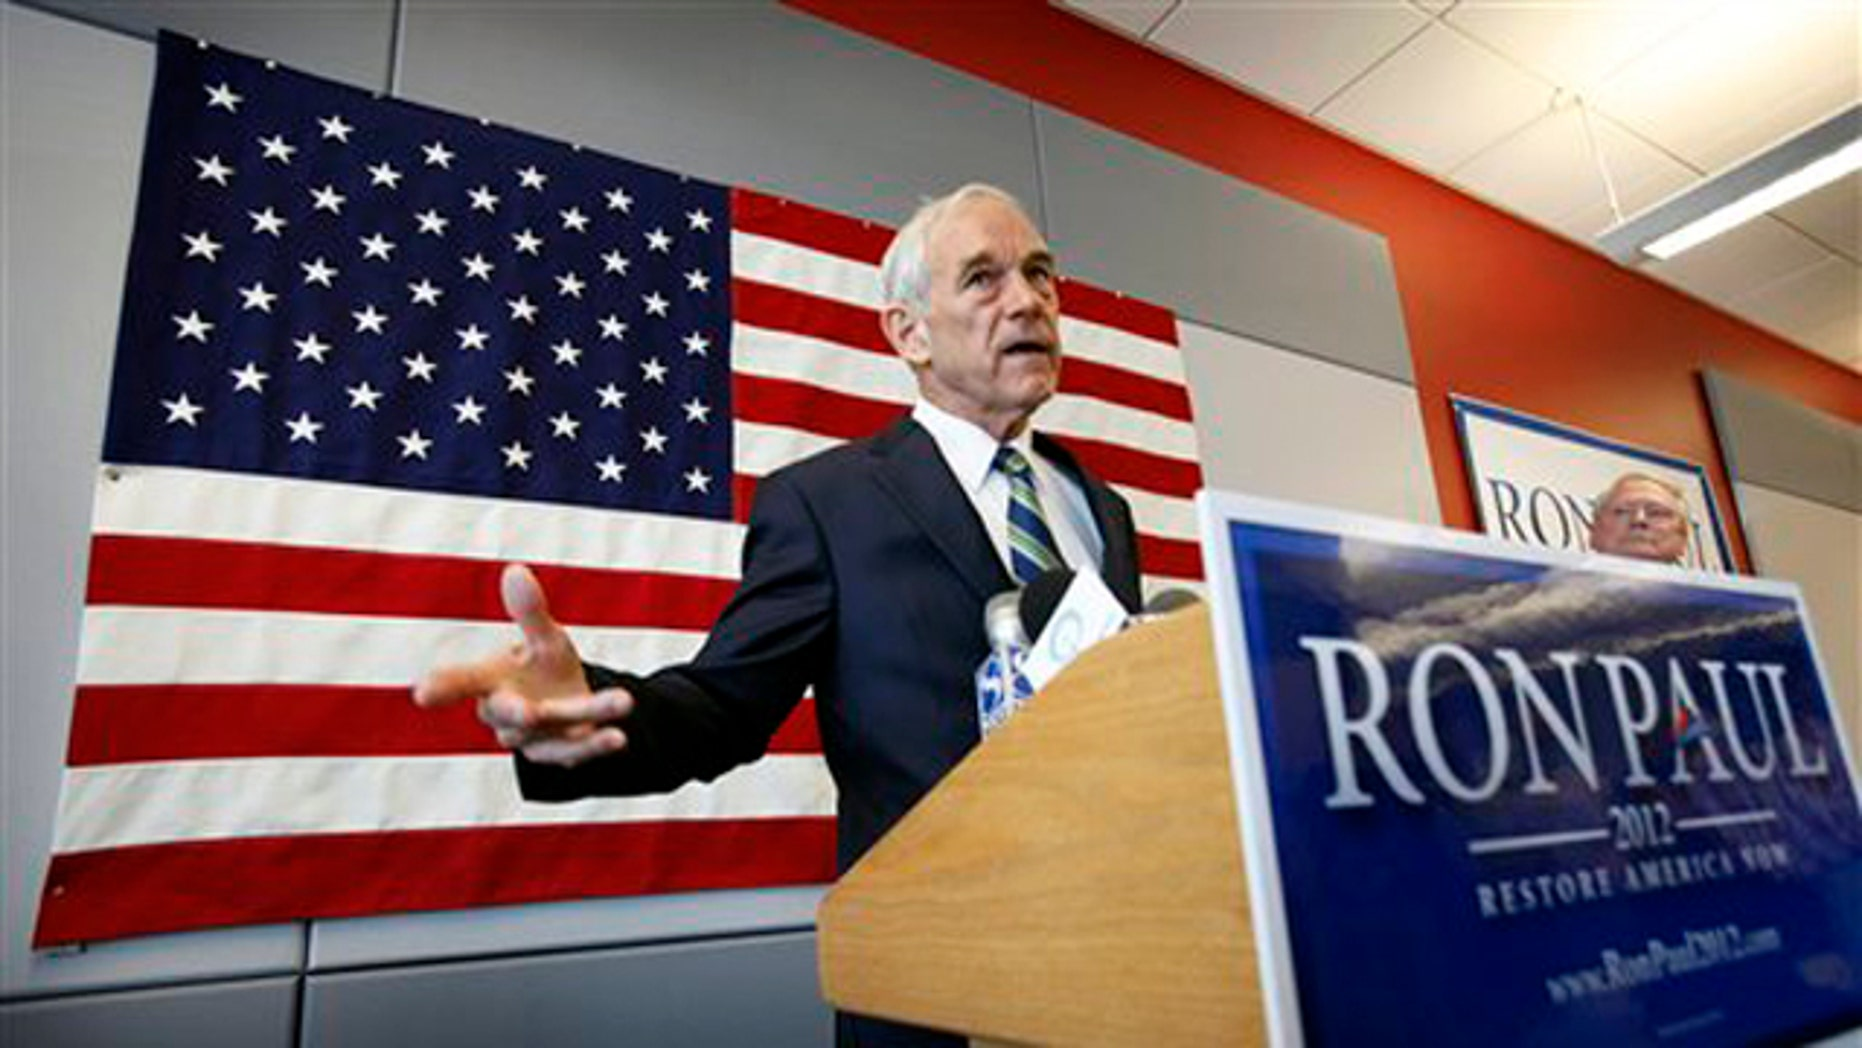 Rep. Ron Paul speaks during a news conference at his newly opened Iowa campaign office May 10 in Ankeny, Iowa.